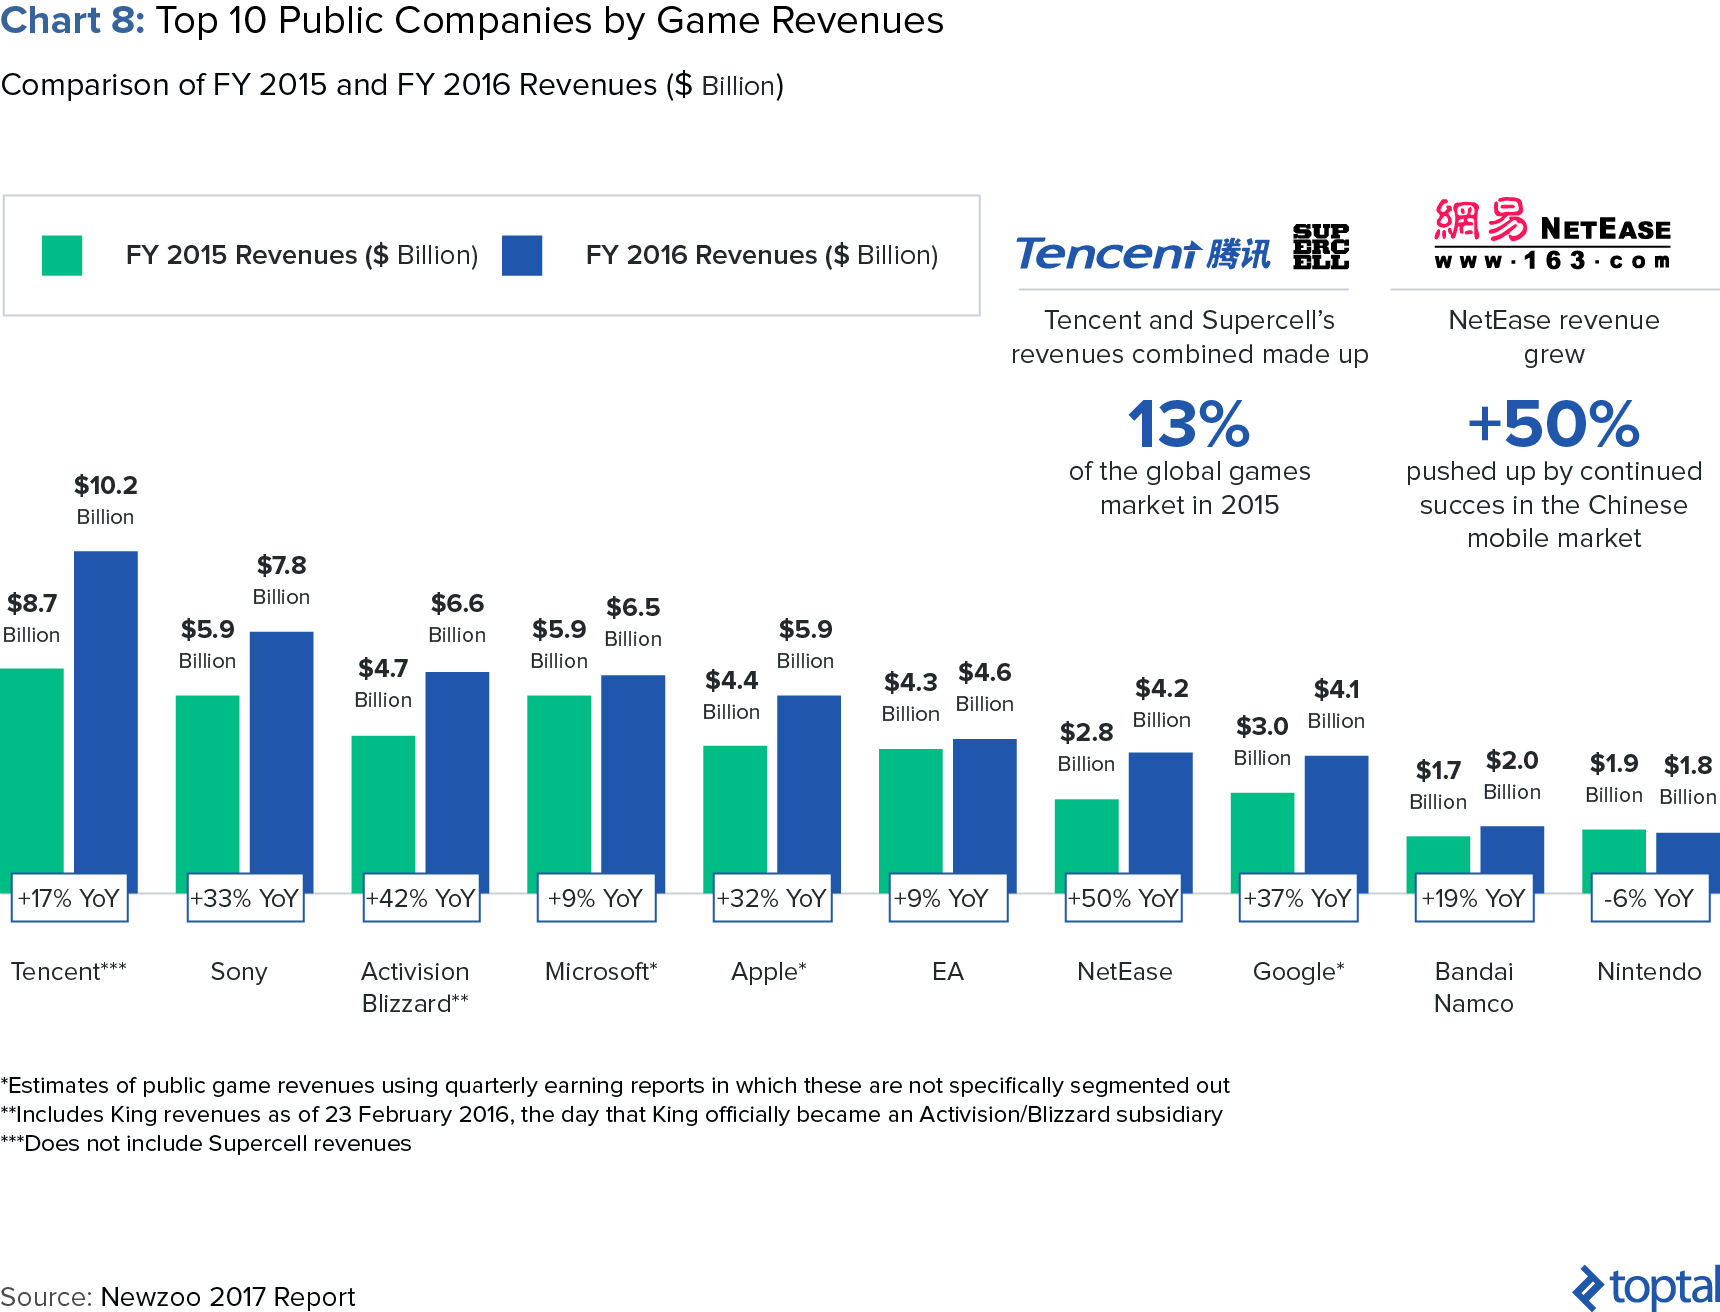 Chart 8: Top 10 Public Companies by Game Revenues